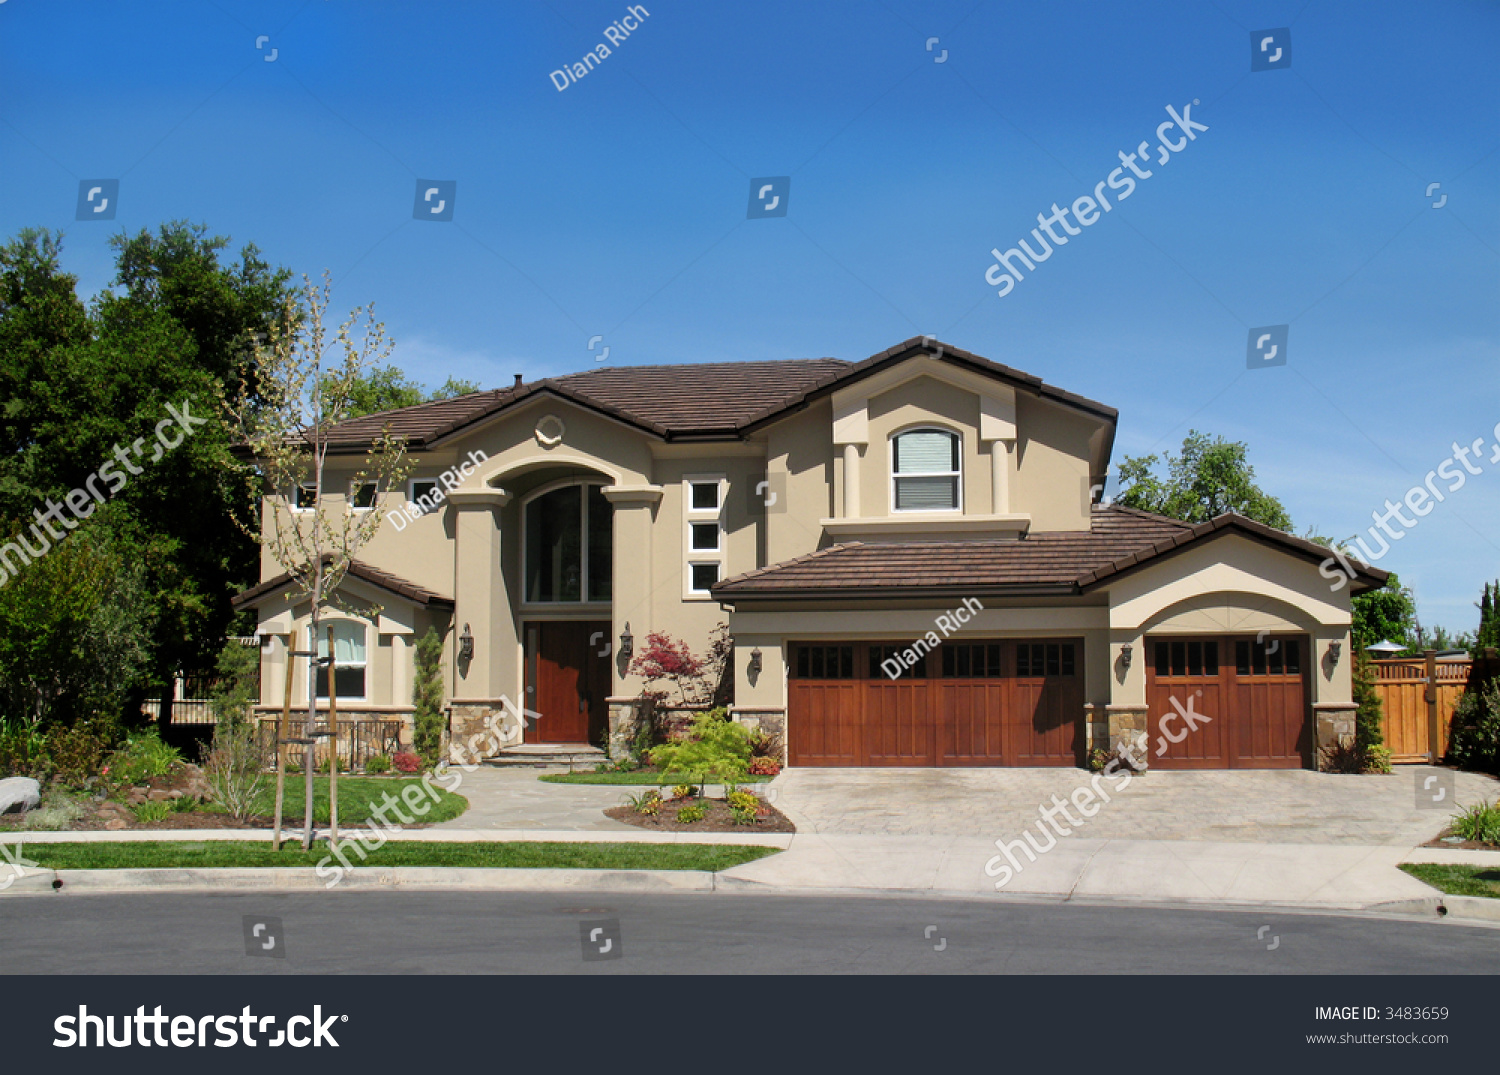 Large New Home With 3 Car Garage Against Blue Sky Stock